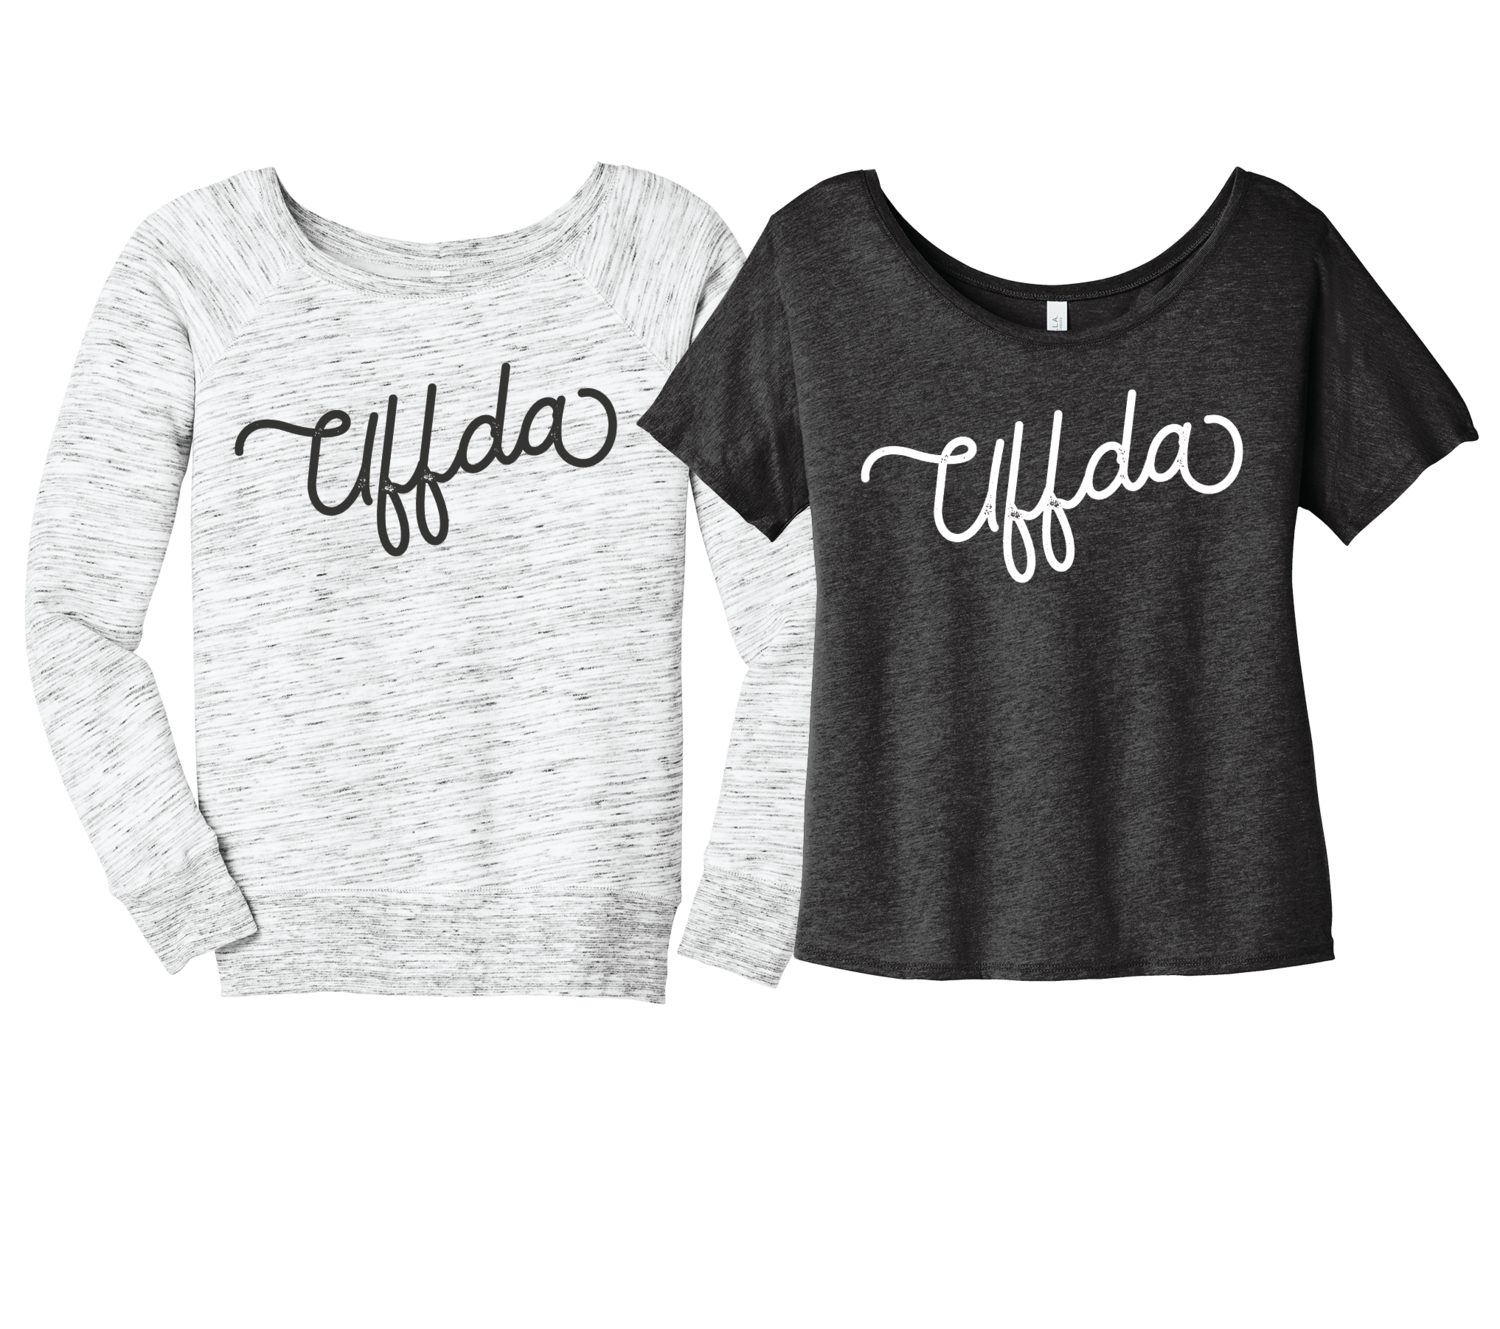 Uffda Wide Neck Sweatshirt and Shirt